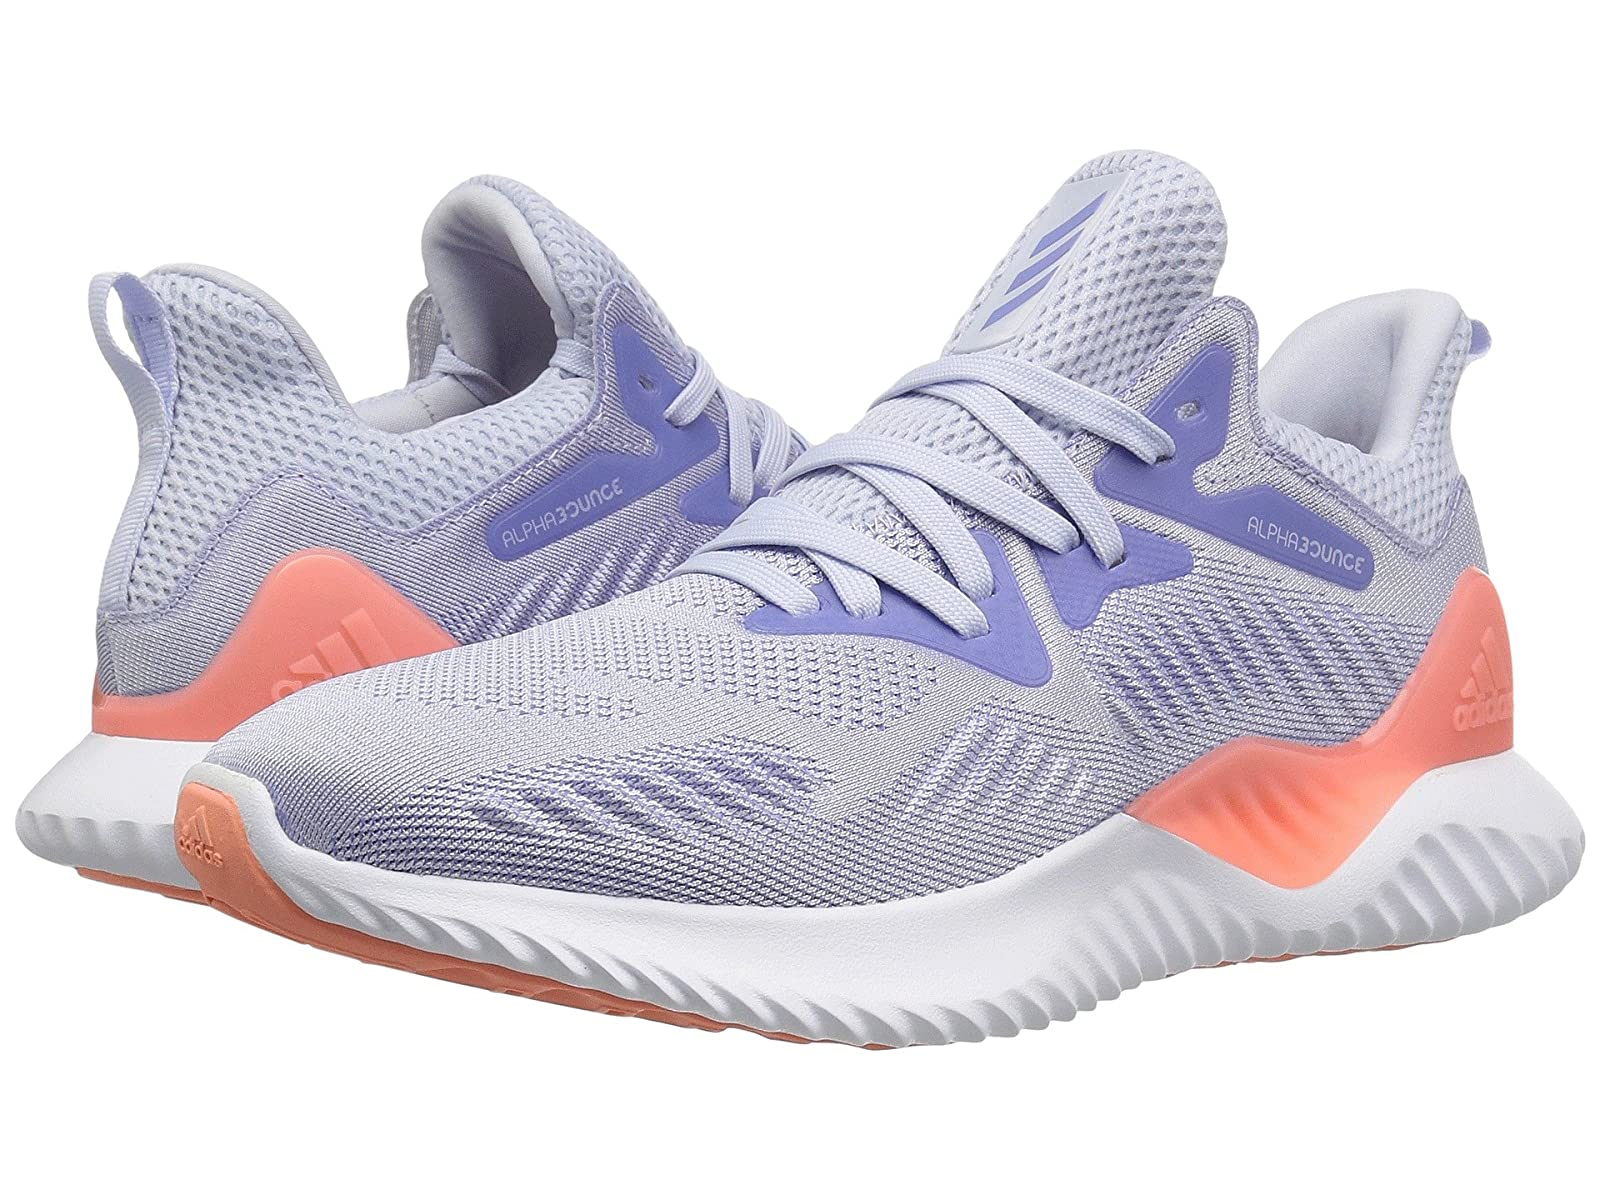 adidas Kids Alphabounce Beyond (Big Kid)Atmospheric grades have affordable shoes